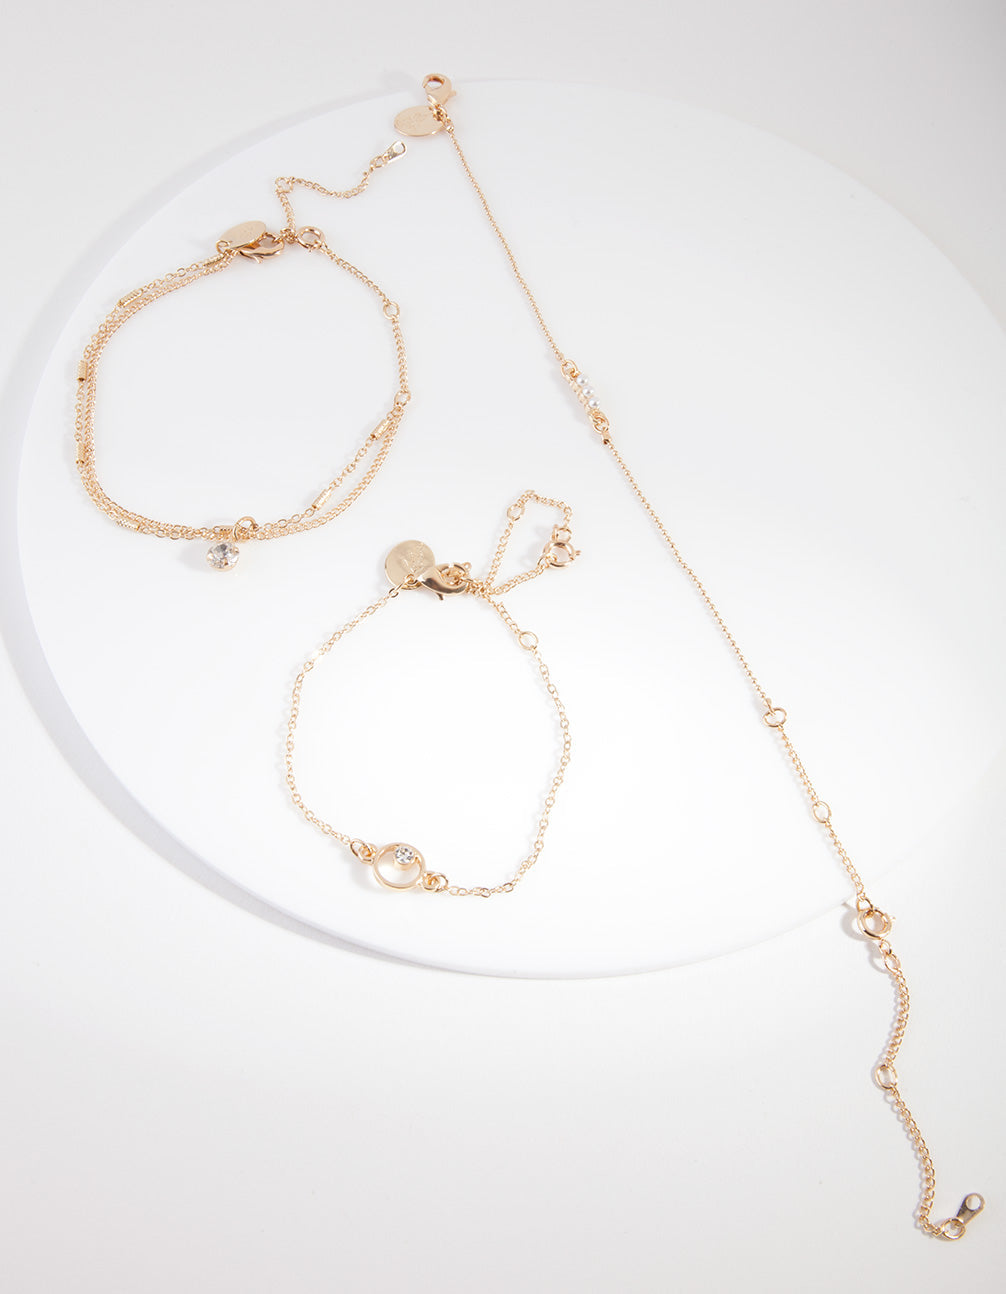 Gold Pearl Friendship Anklet Bracelet Pack